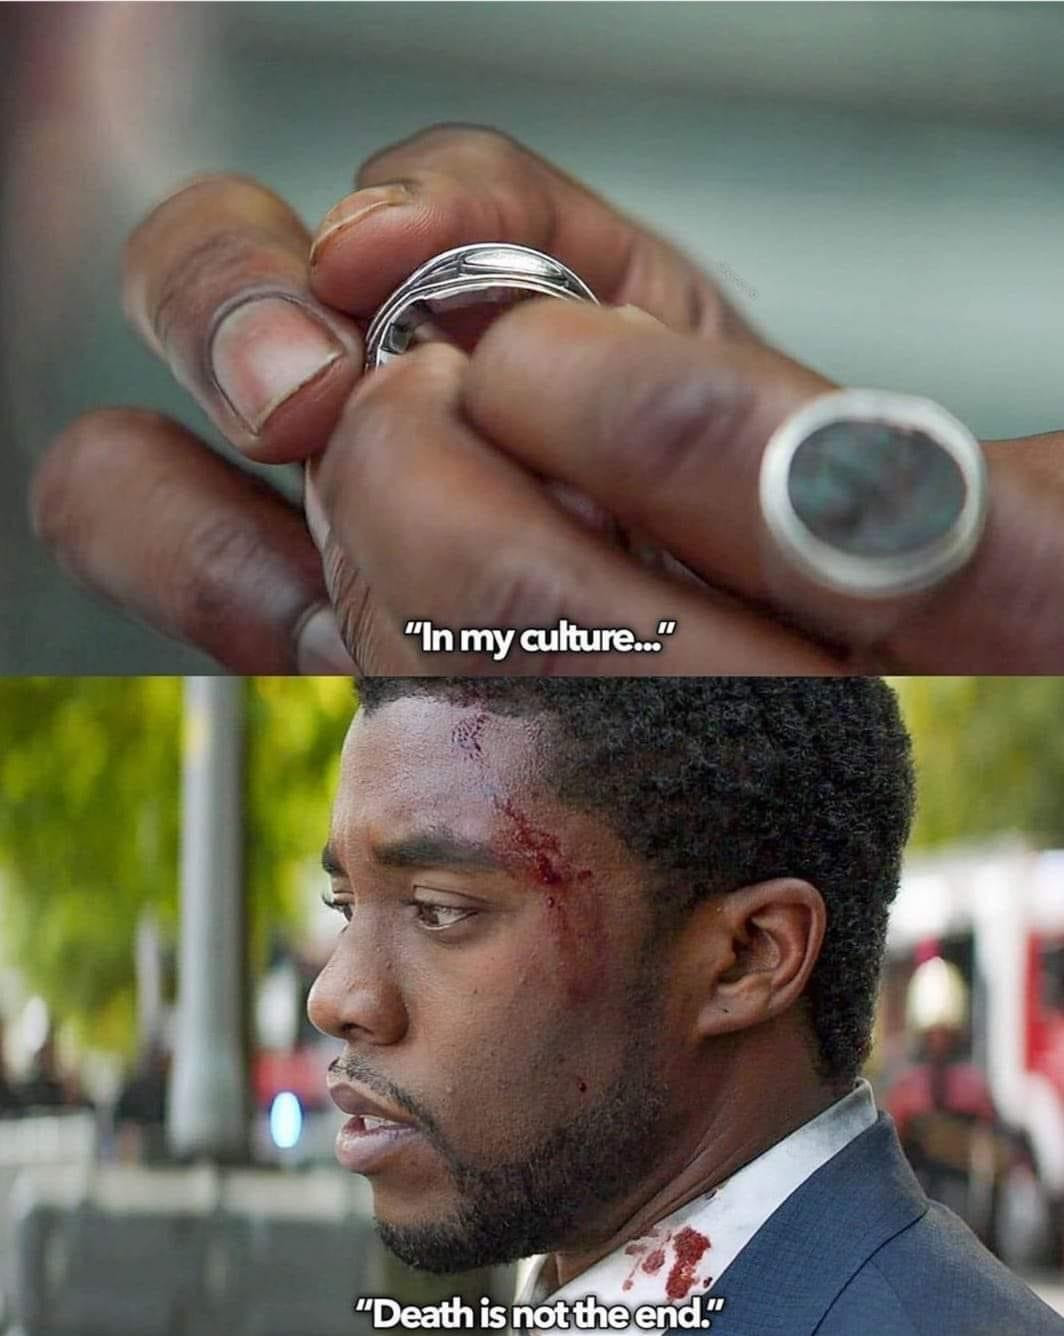 In my culture, death is not the end - Chadwick Boseman